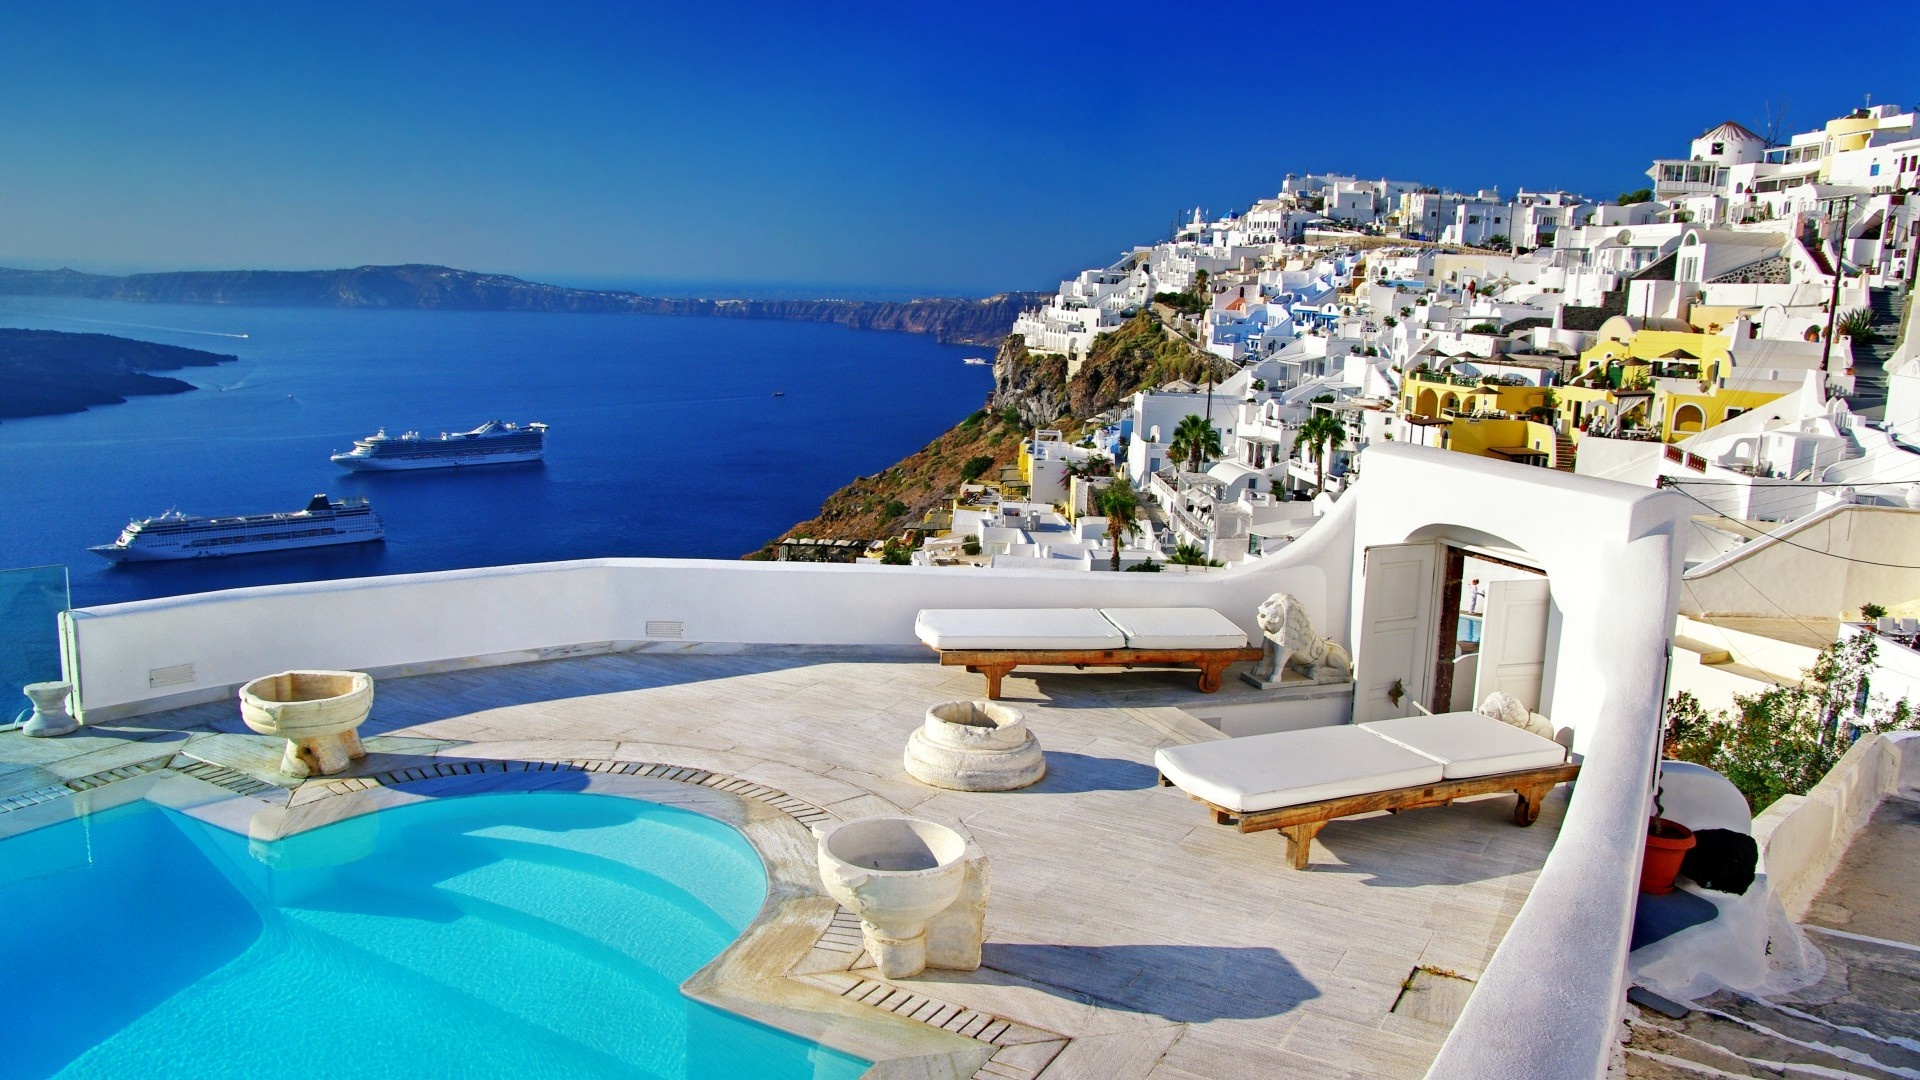 New Santorini Images GsFDcY HD Wallpapers 1920x1080